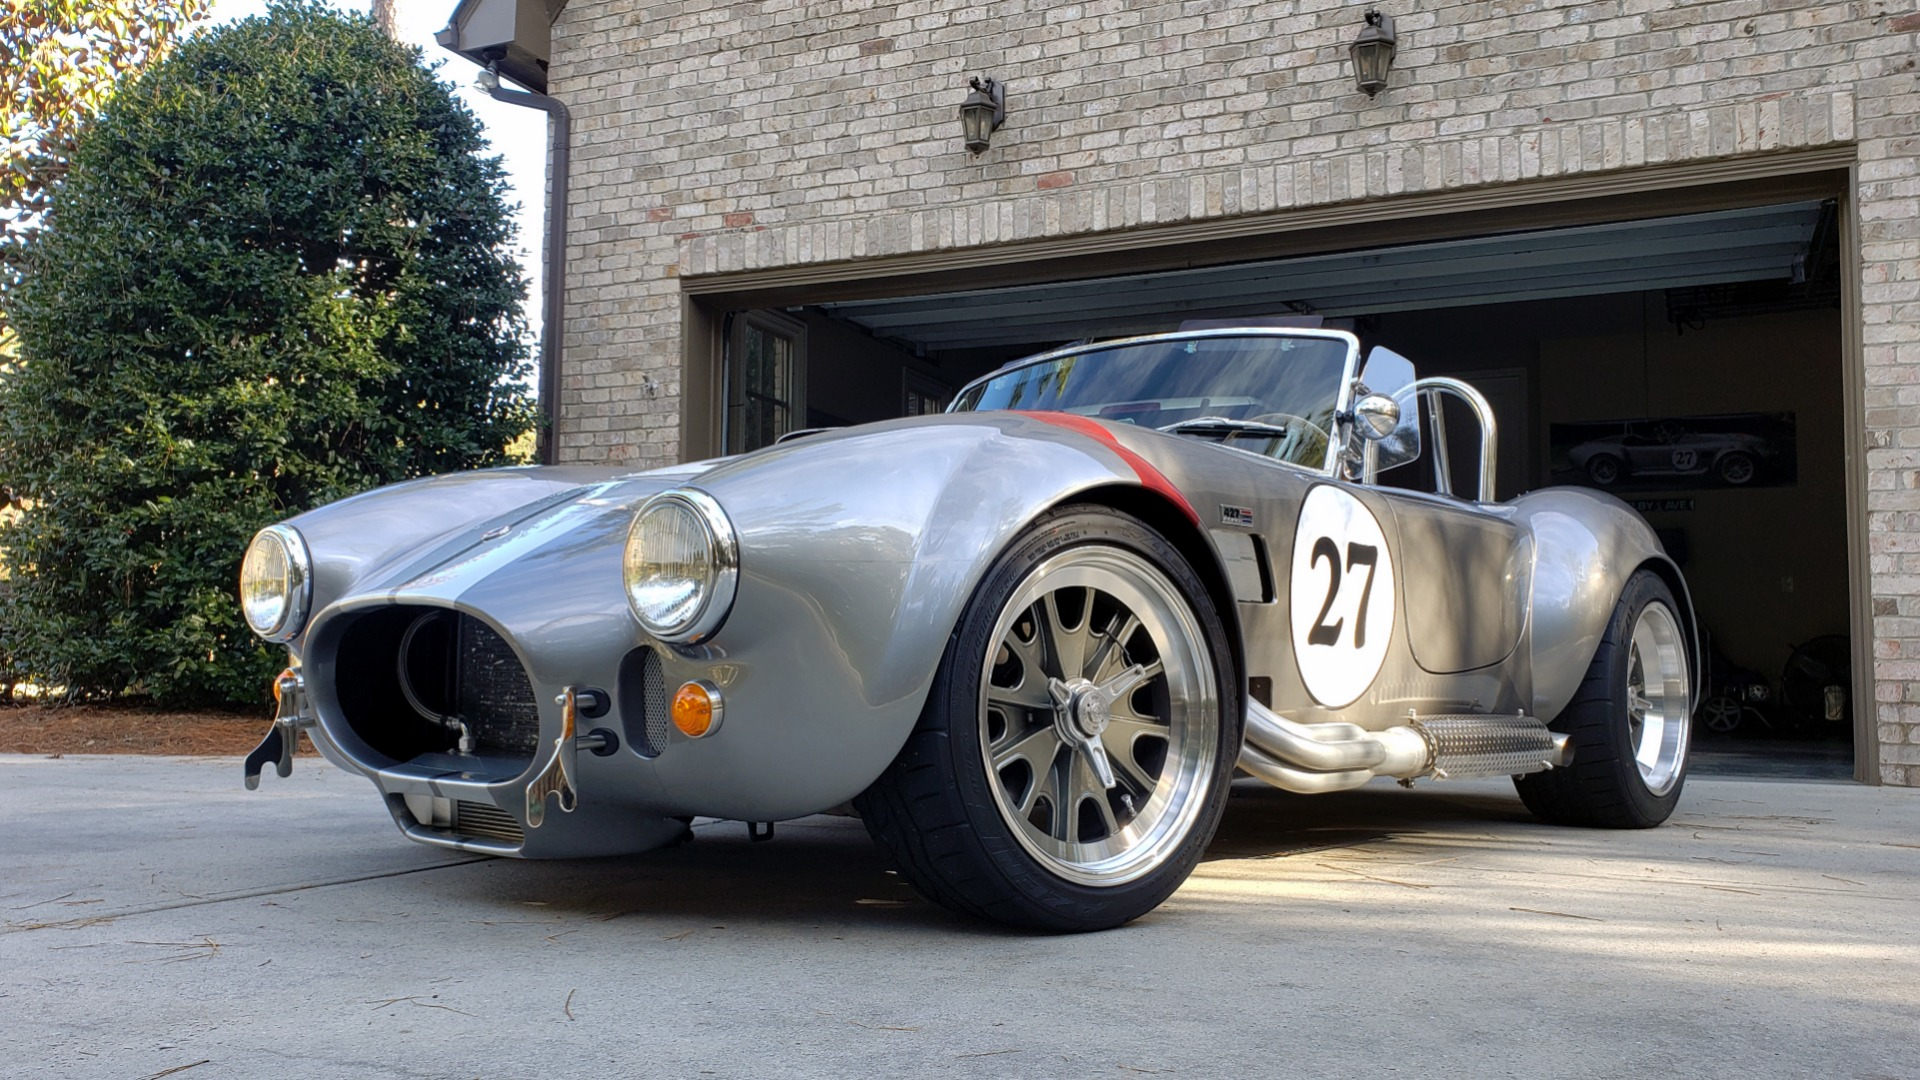 Used 1965 Ford COBRA 427 ROADSTER BY BRACKDRAFT RACING ROUSH 553HP V8 / TREMEC 6-SPD / PWR STRNG for sale $74,999 at Formula Imports in Charlotte NC 28227 9